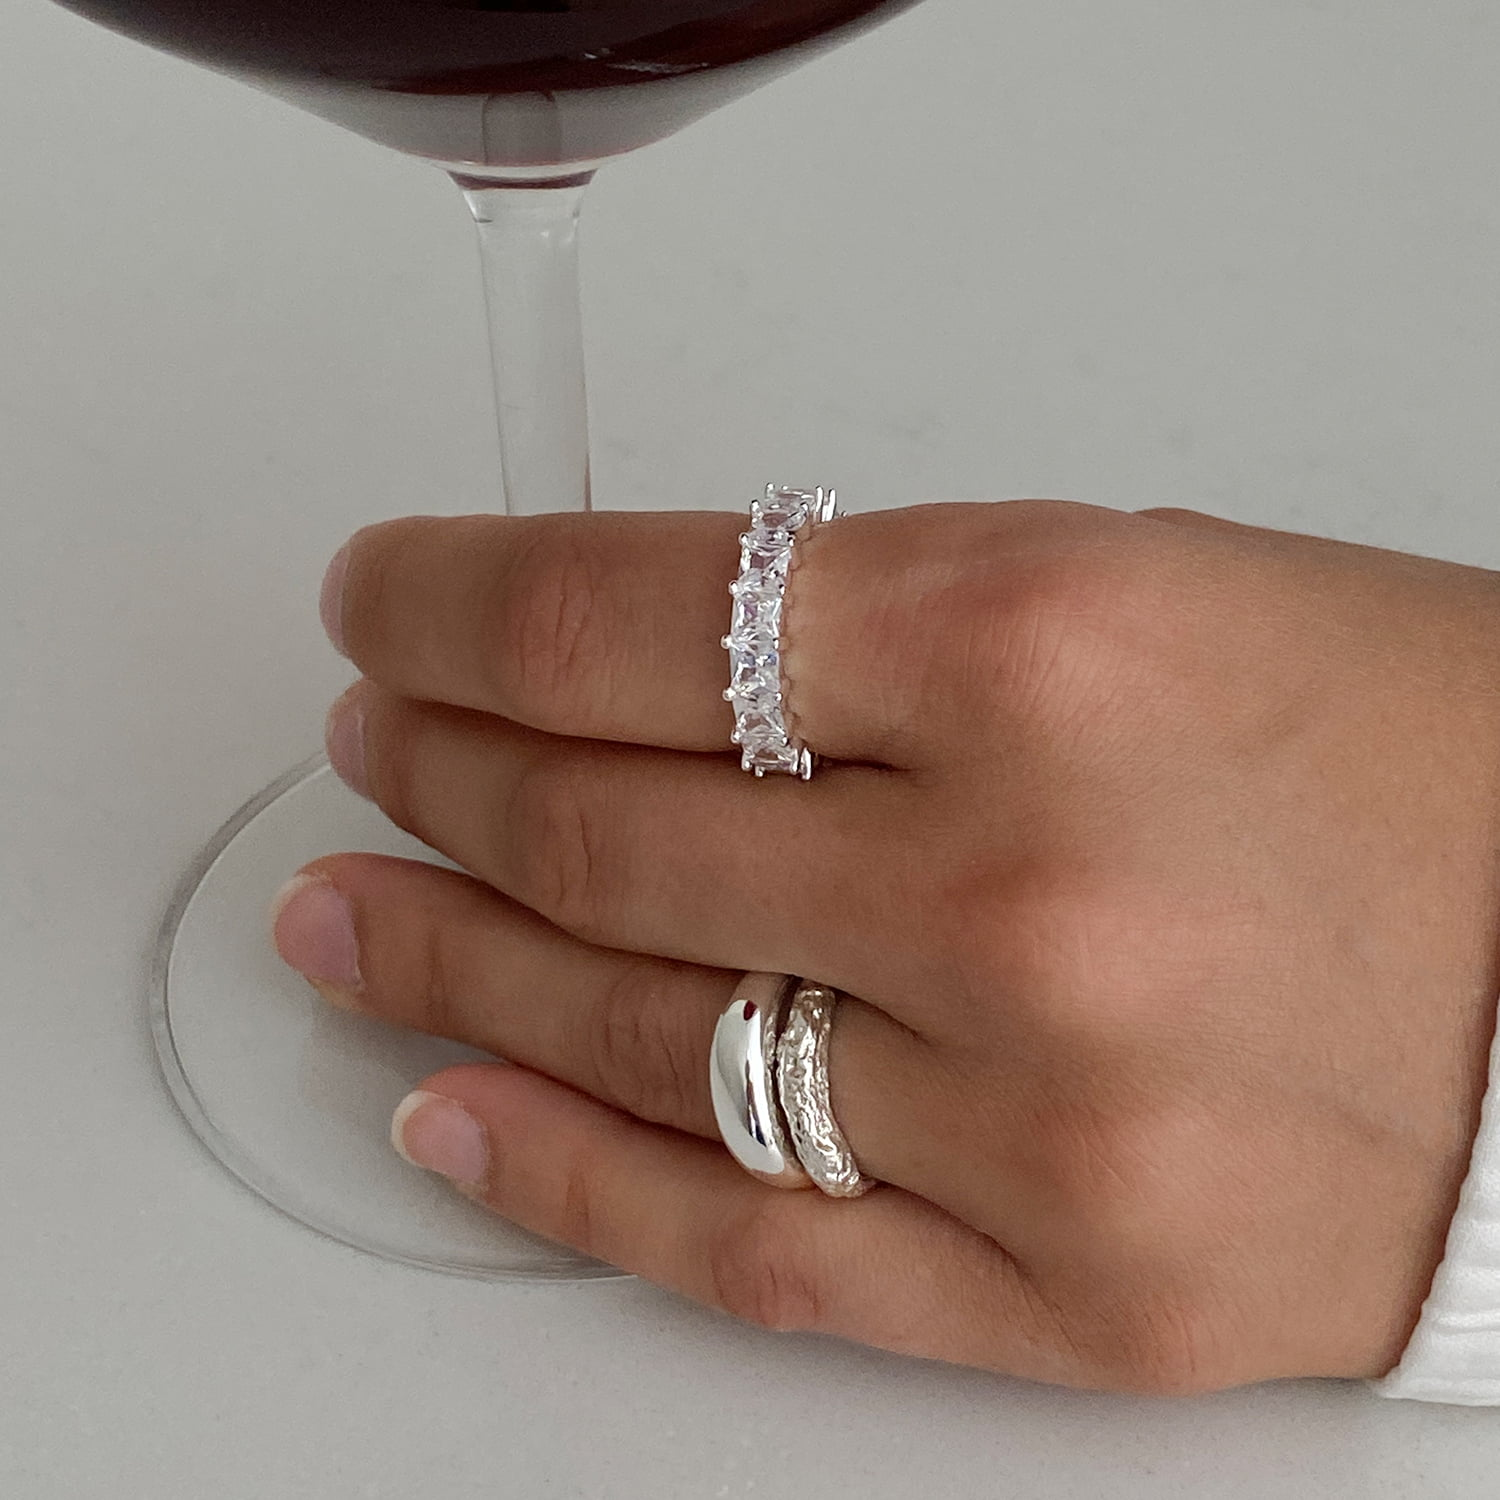 Pave ballier ring in silver